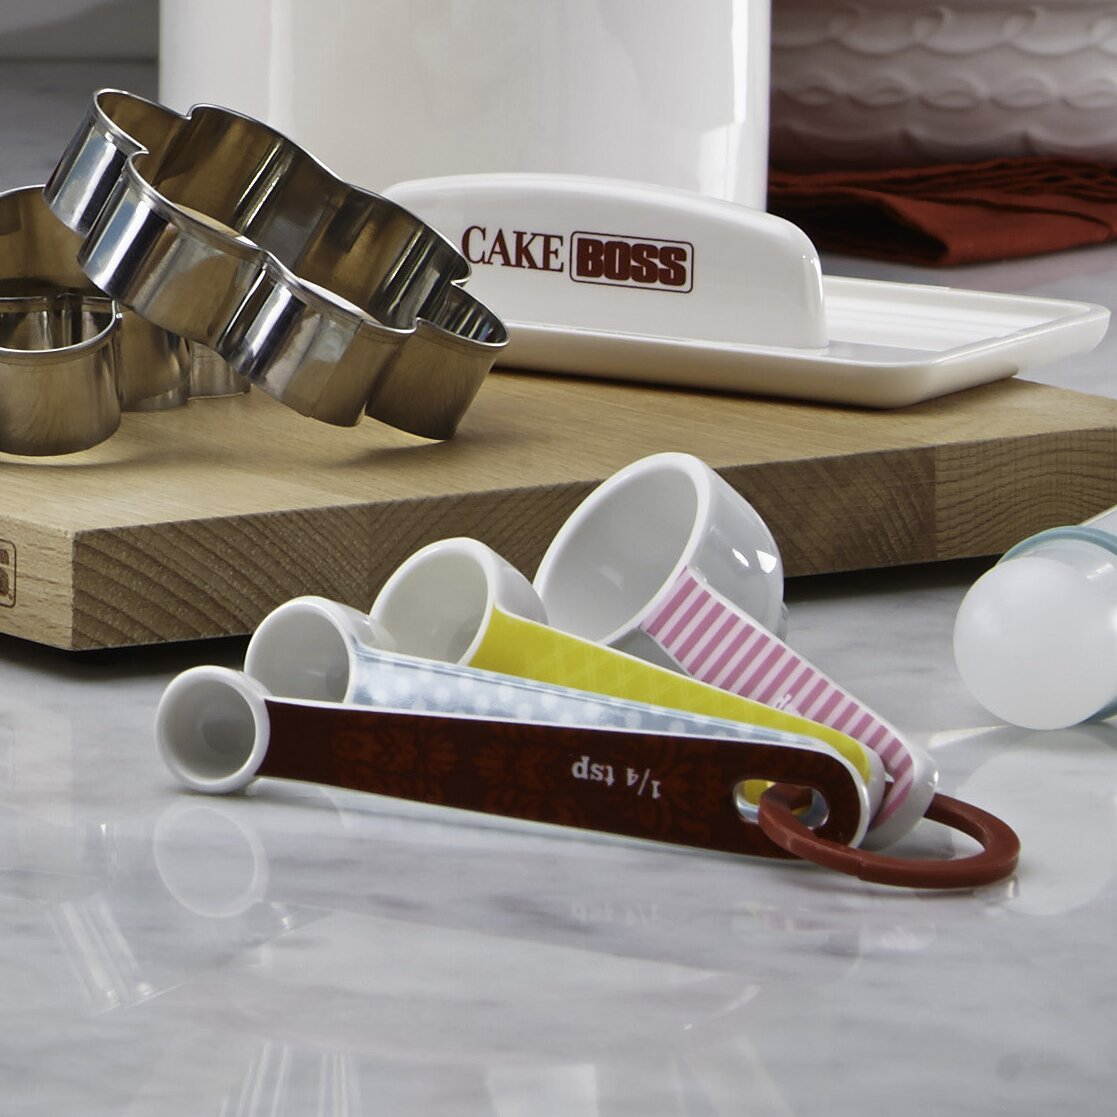 Countertop Accessories : Cake Boss 4 Piece Countertop Accessories Melamine Measuring Spoon Set